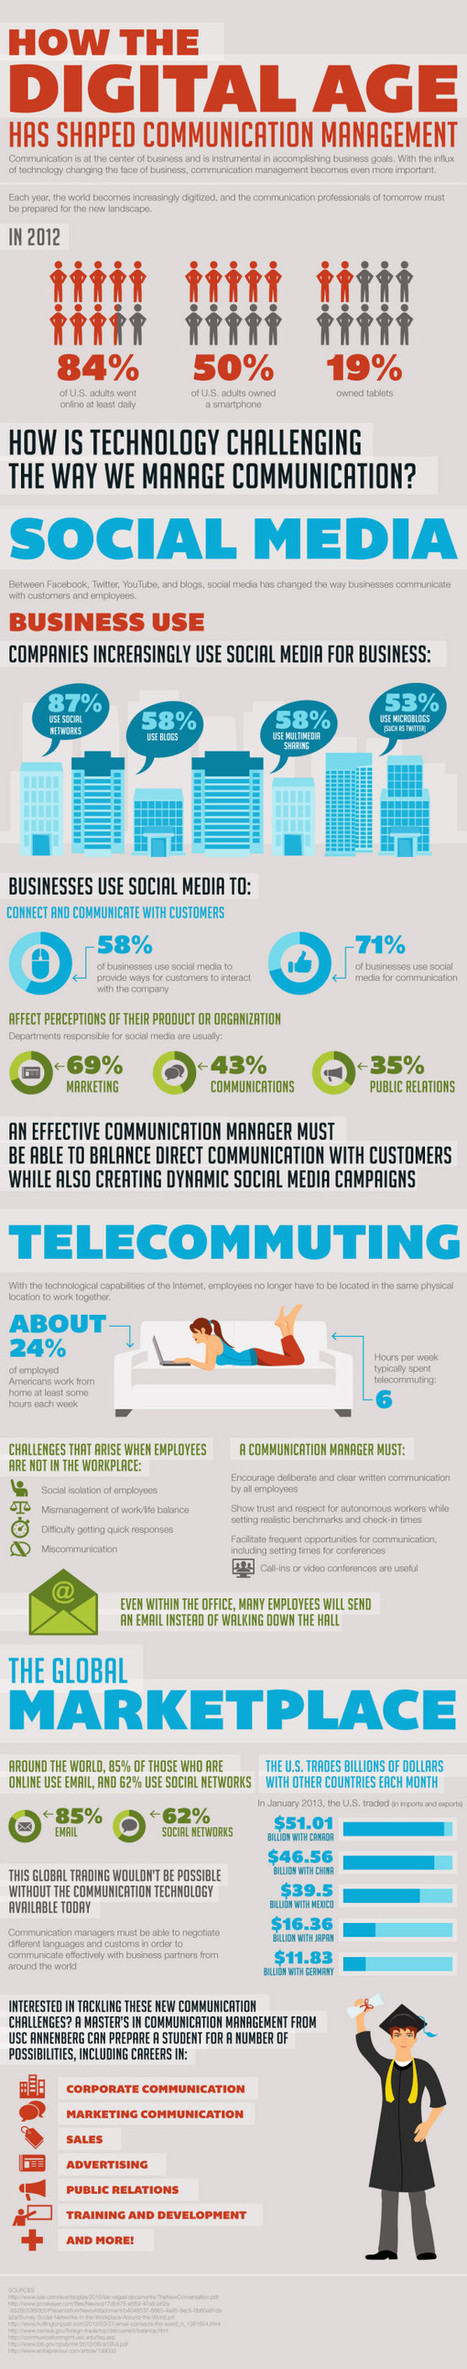 How the digital age has shaped communication management [infographic] | cult | Scoop.it